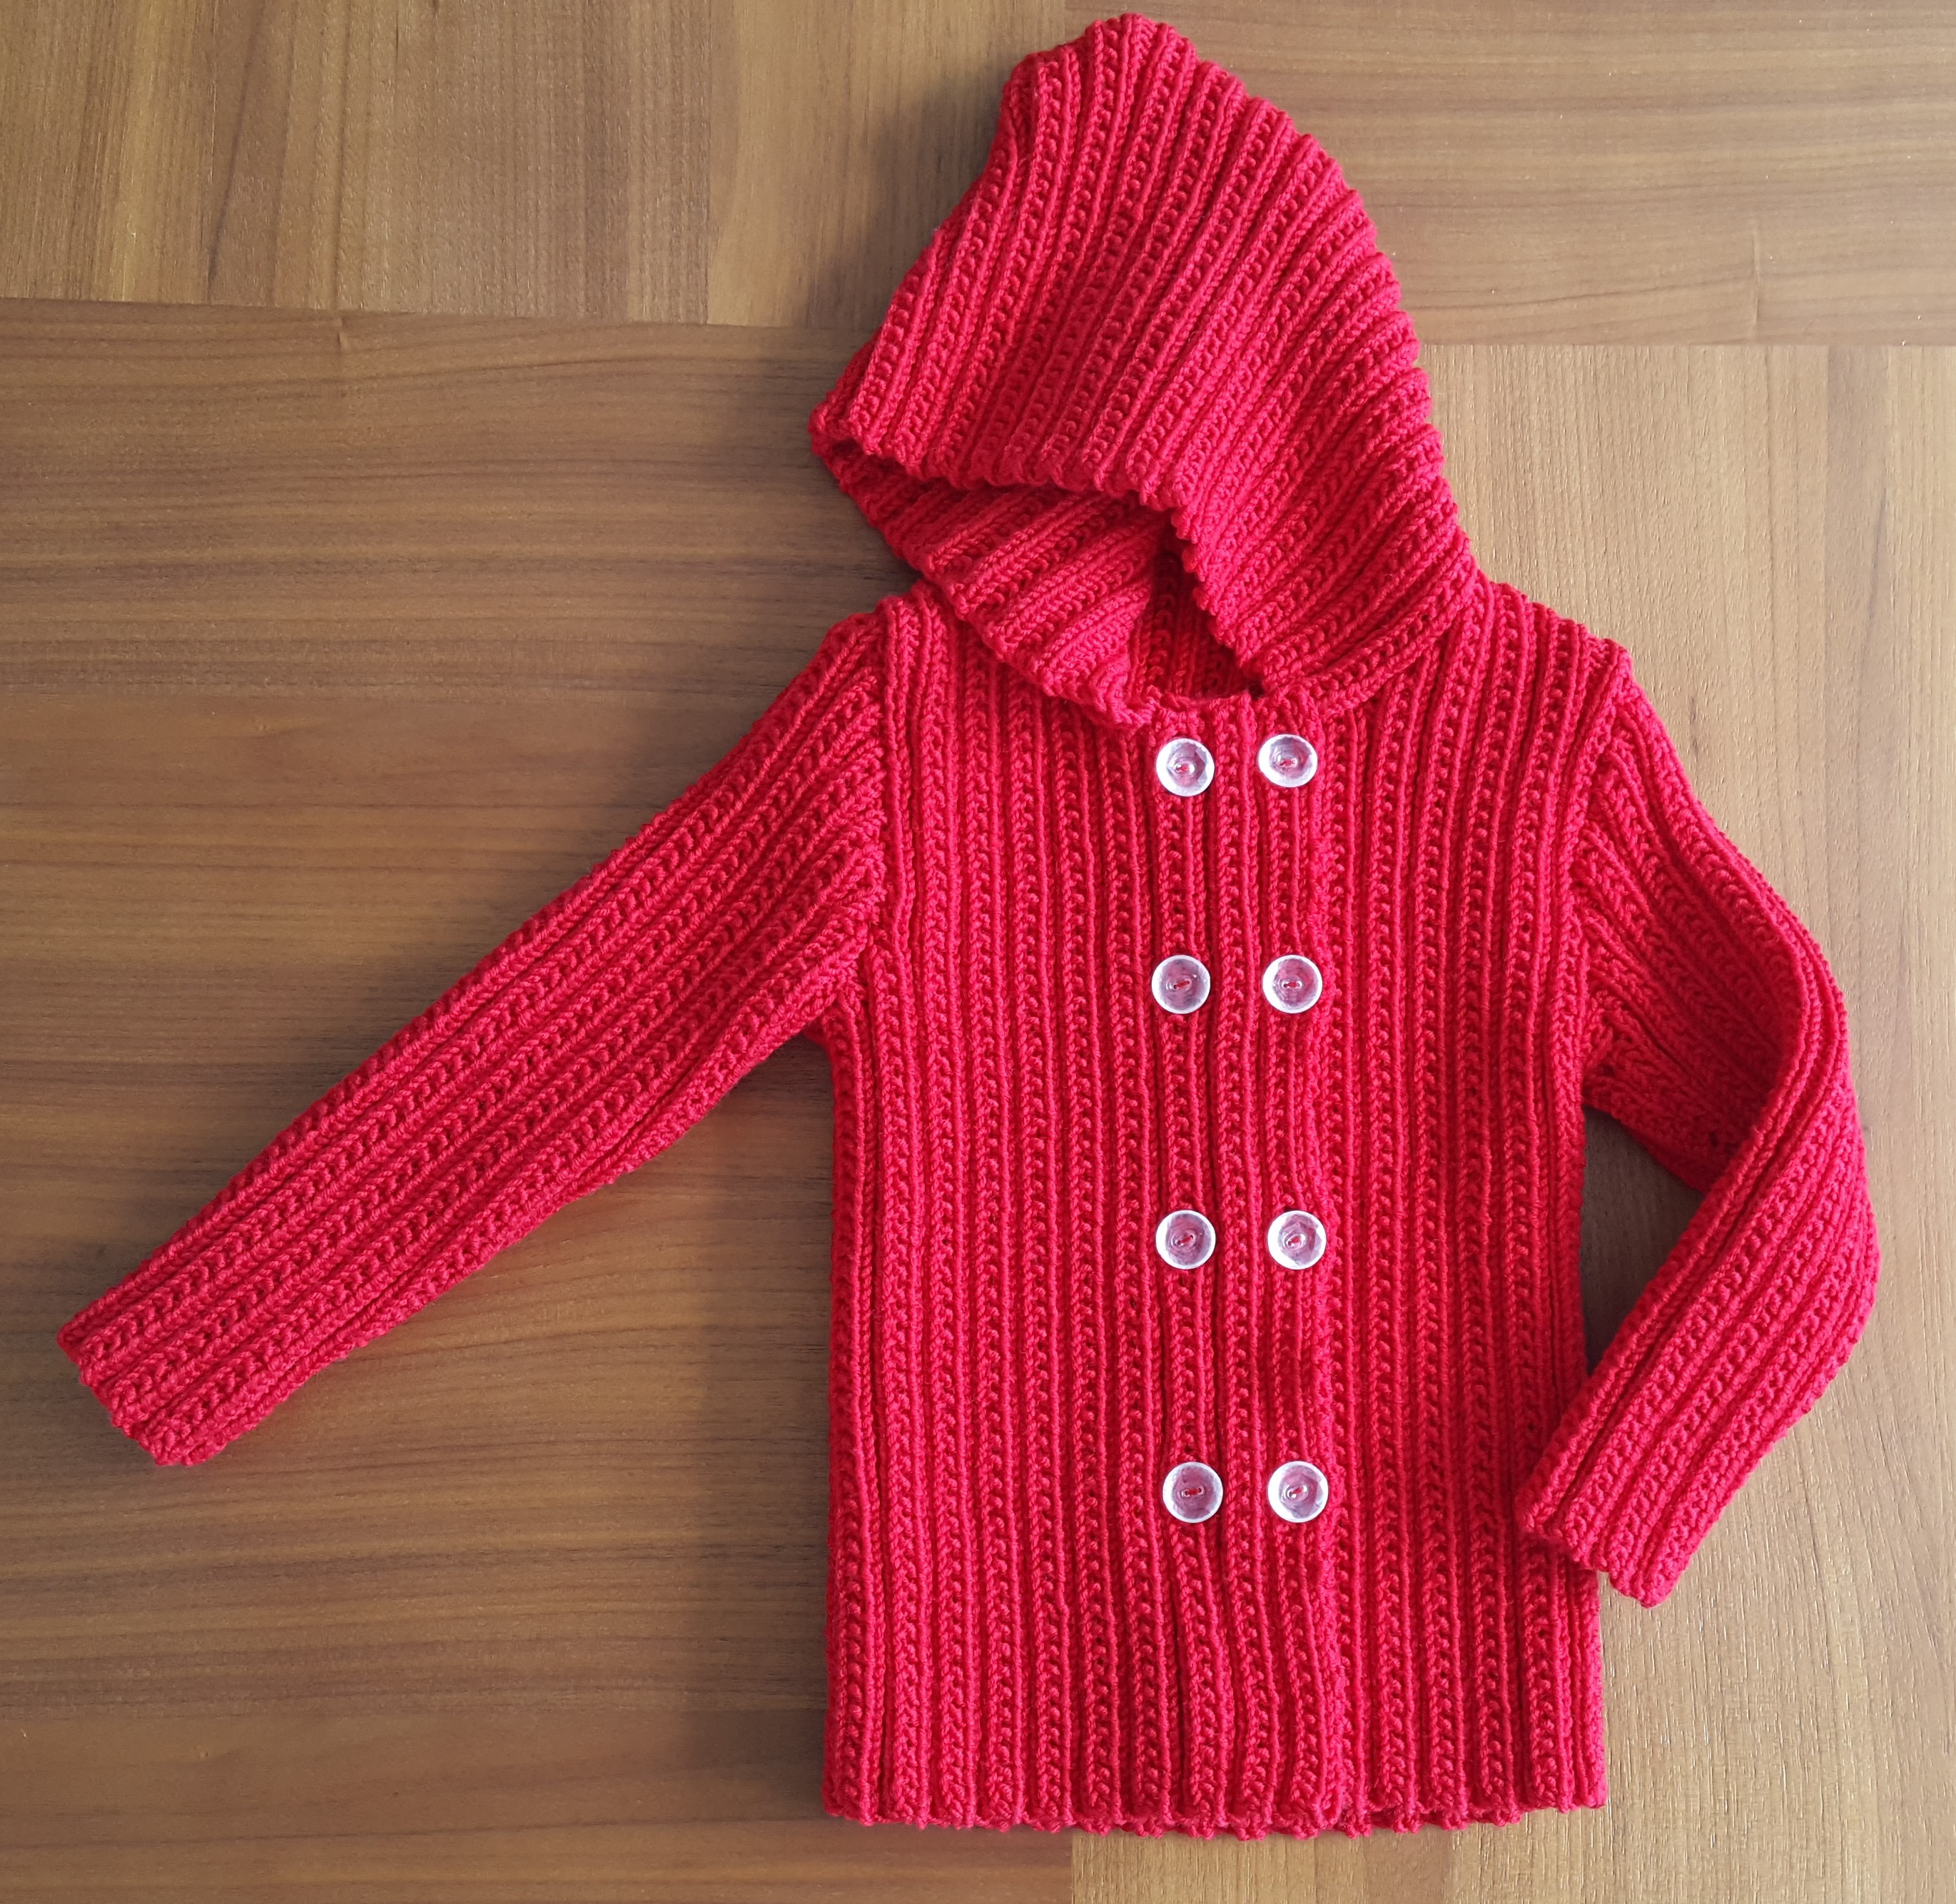 Child's double breasted jacket with hood - Paris